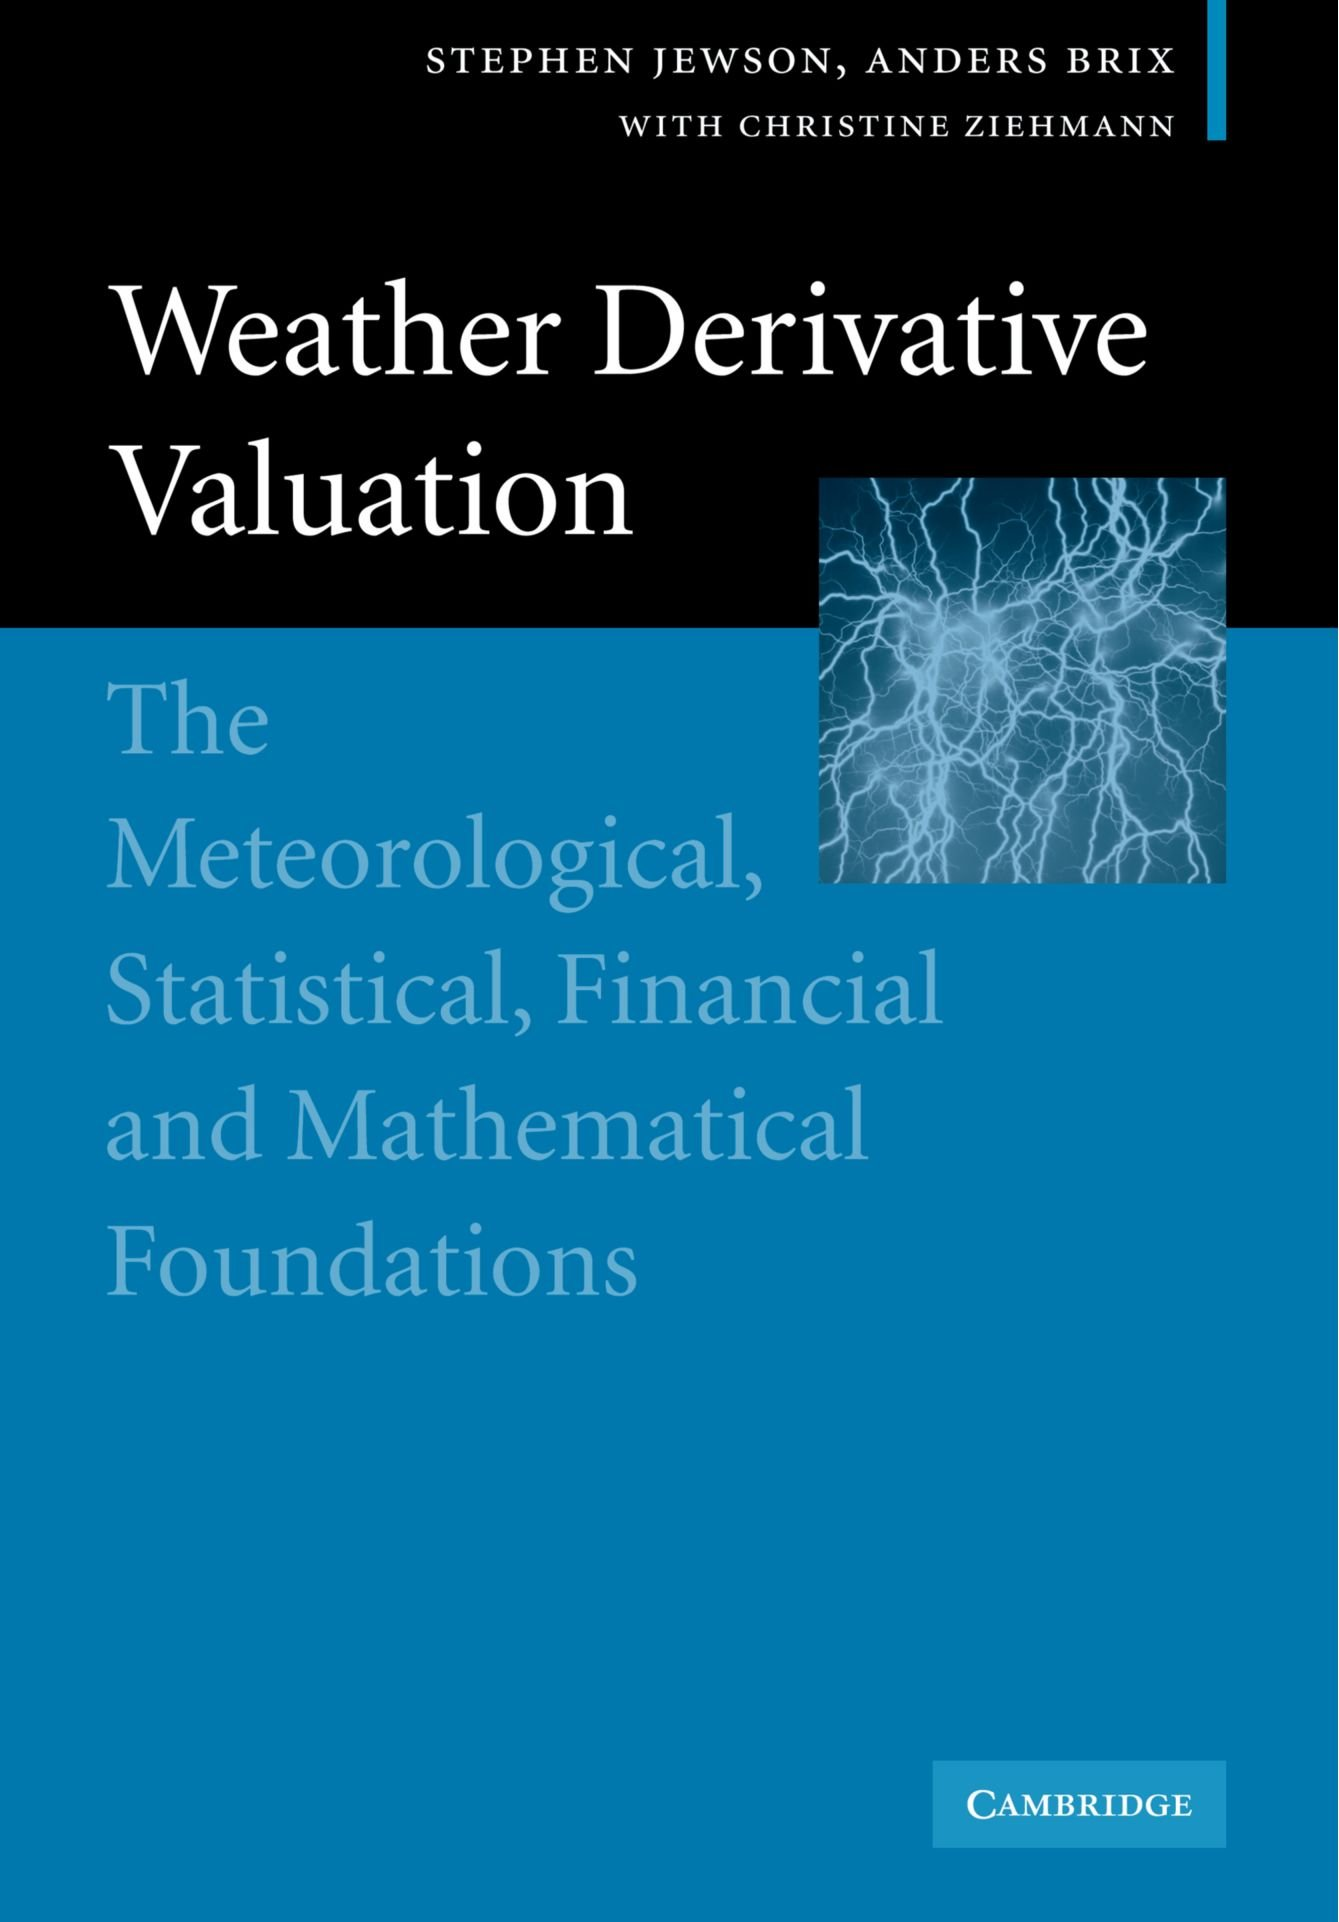 Weather Derivative Valuation: The Meteorological, Statistical, Financial and Mathematical Foundations